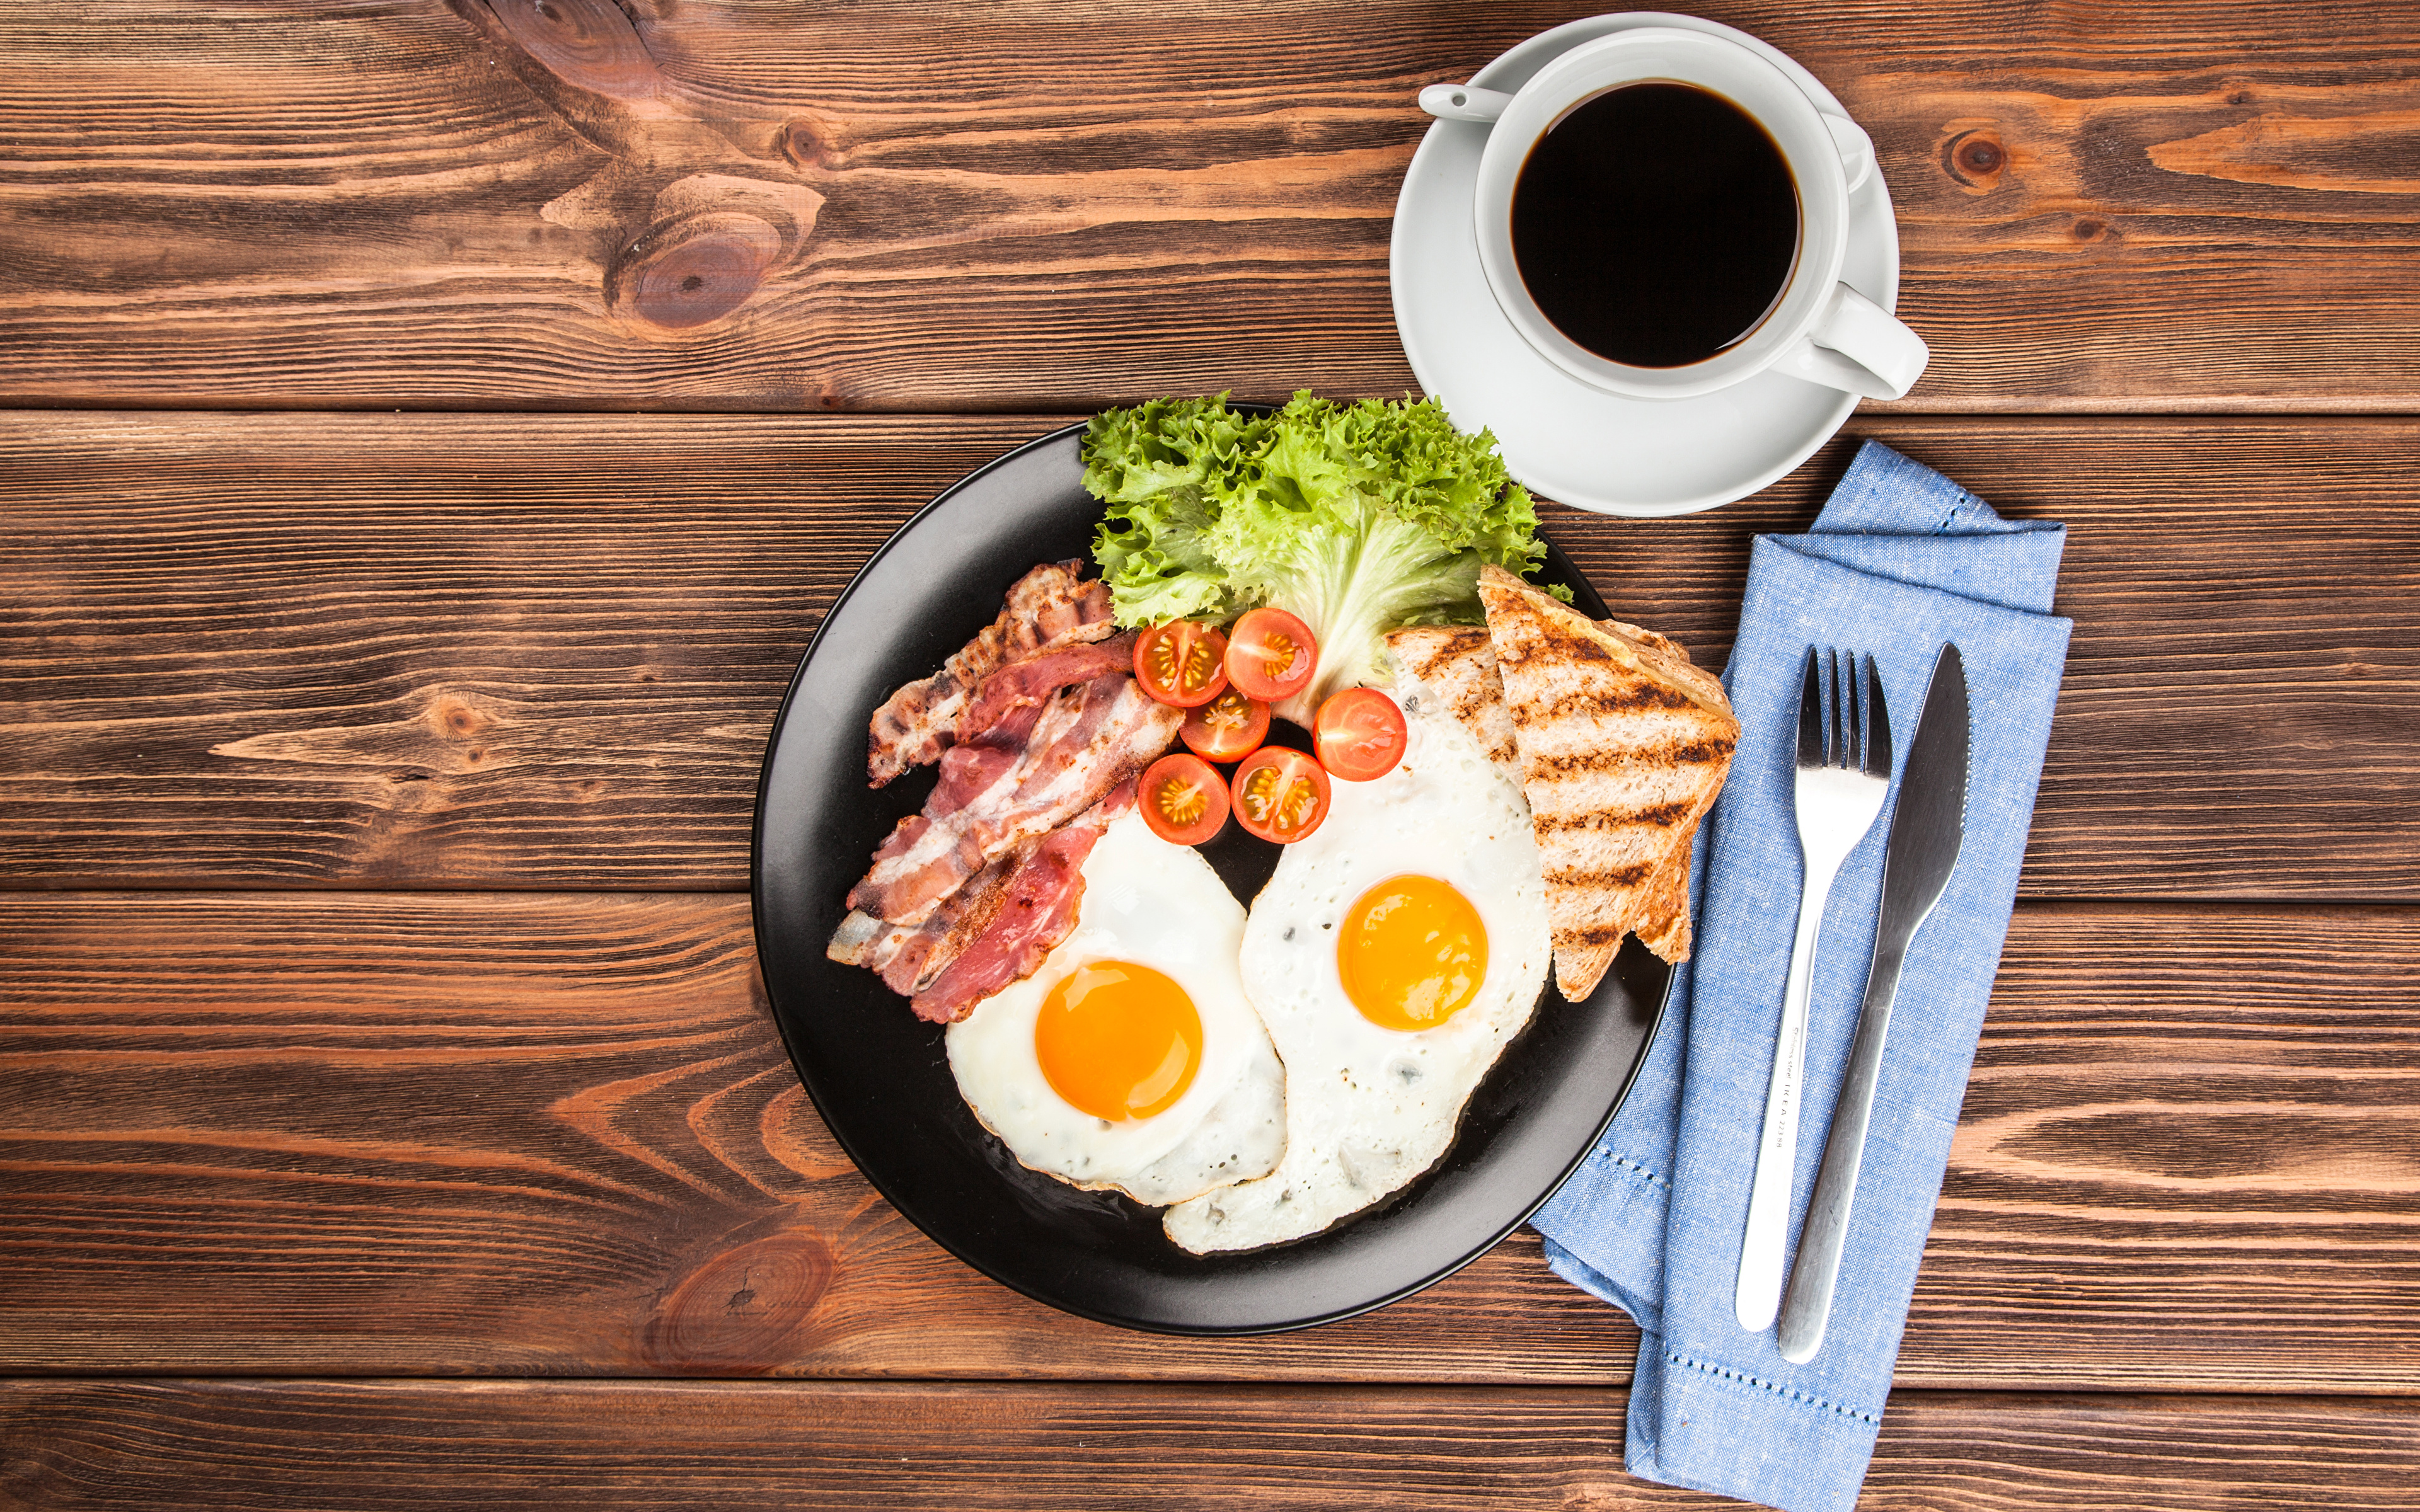 Photos Knife Fried egg Coffee Breakfast Bread Cup Fork Food Vegetables Still-life Meat products 3840x2400